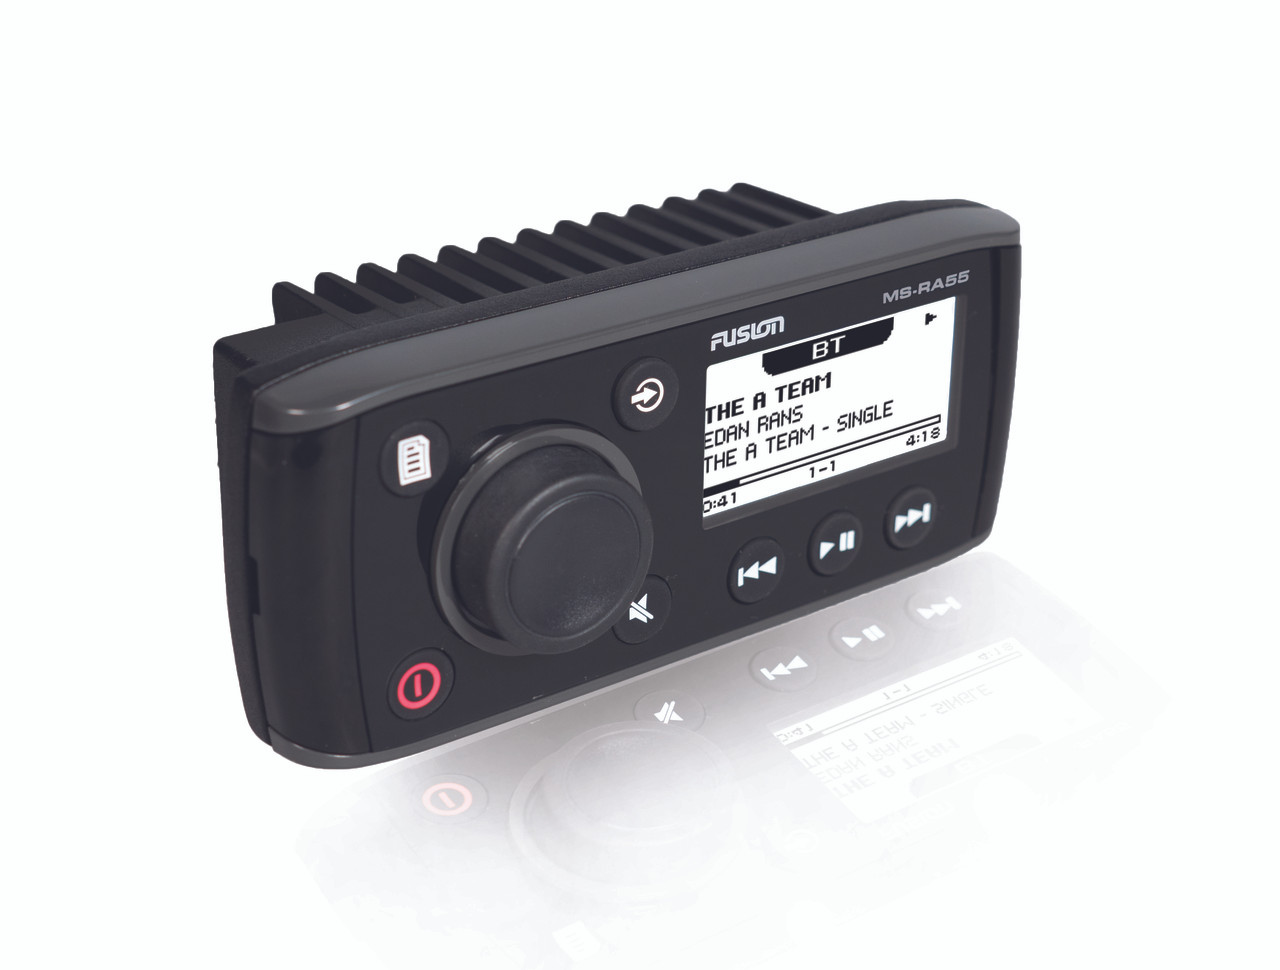 Fusion MS-RA55 Compact Marine Stereo Left View